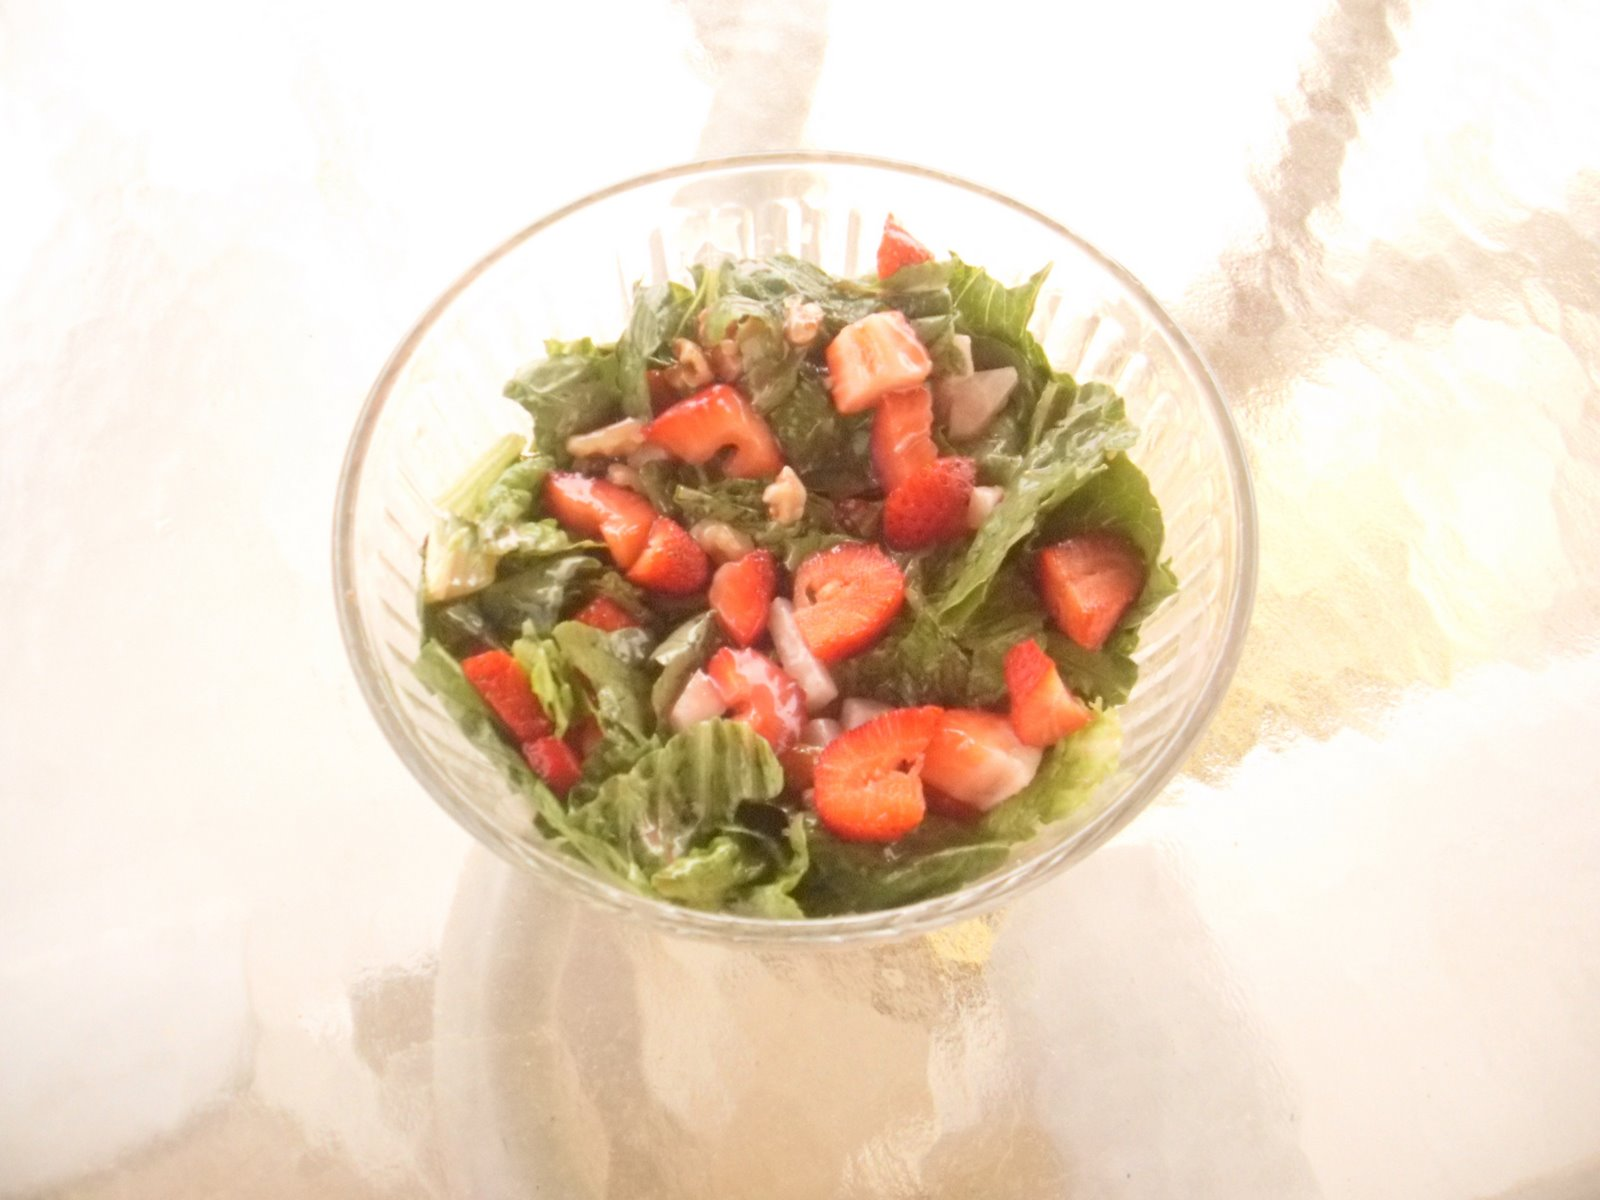 Strawberry Jicama Salad Recipe